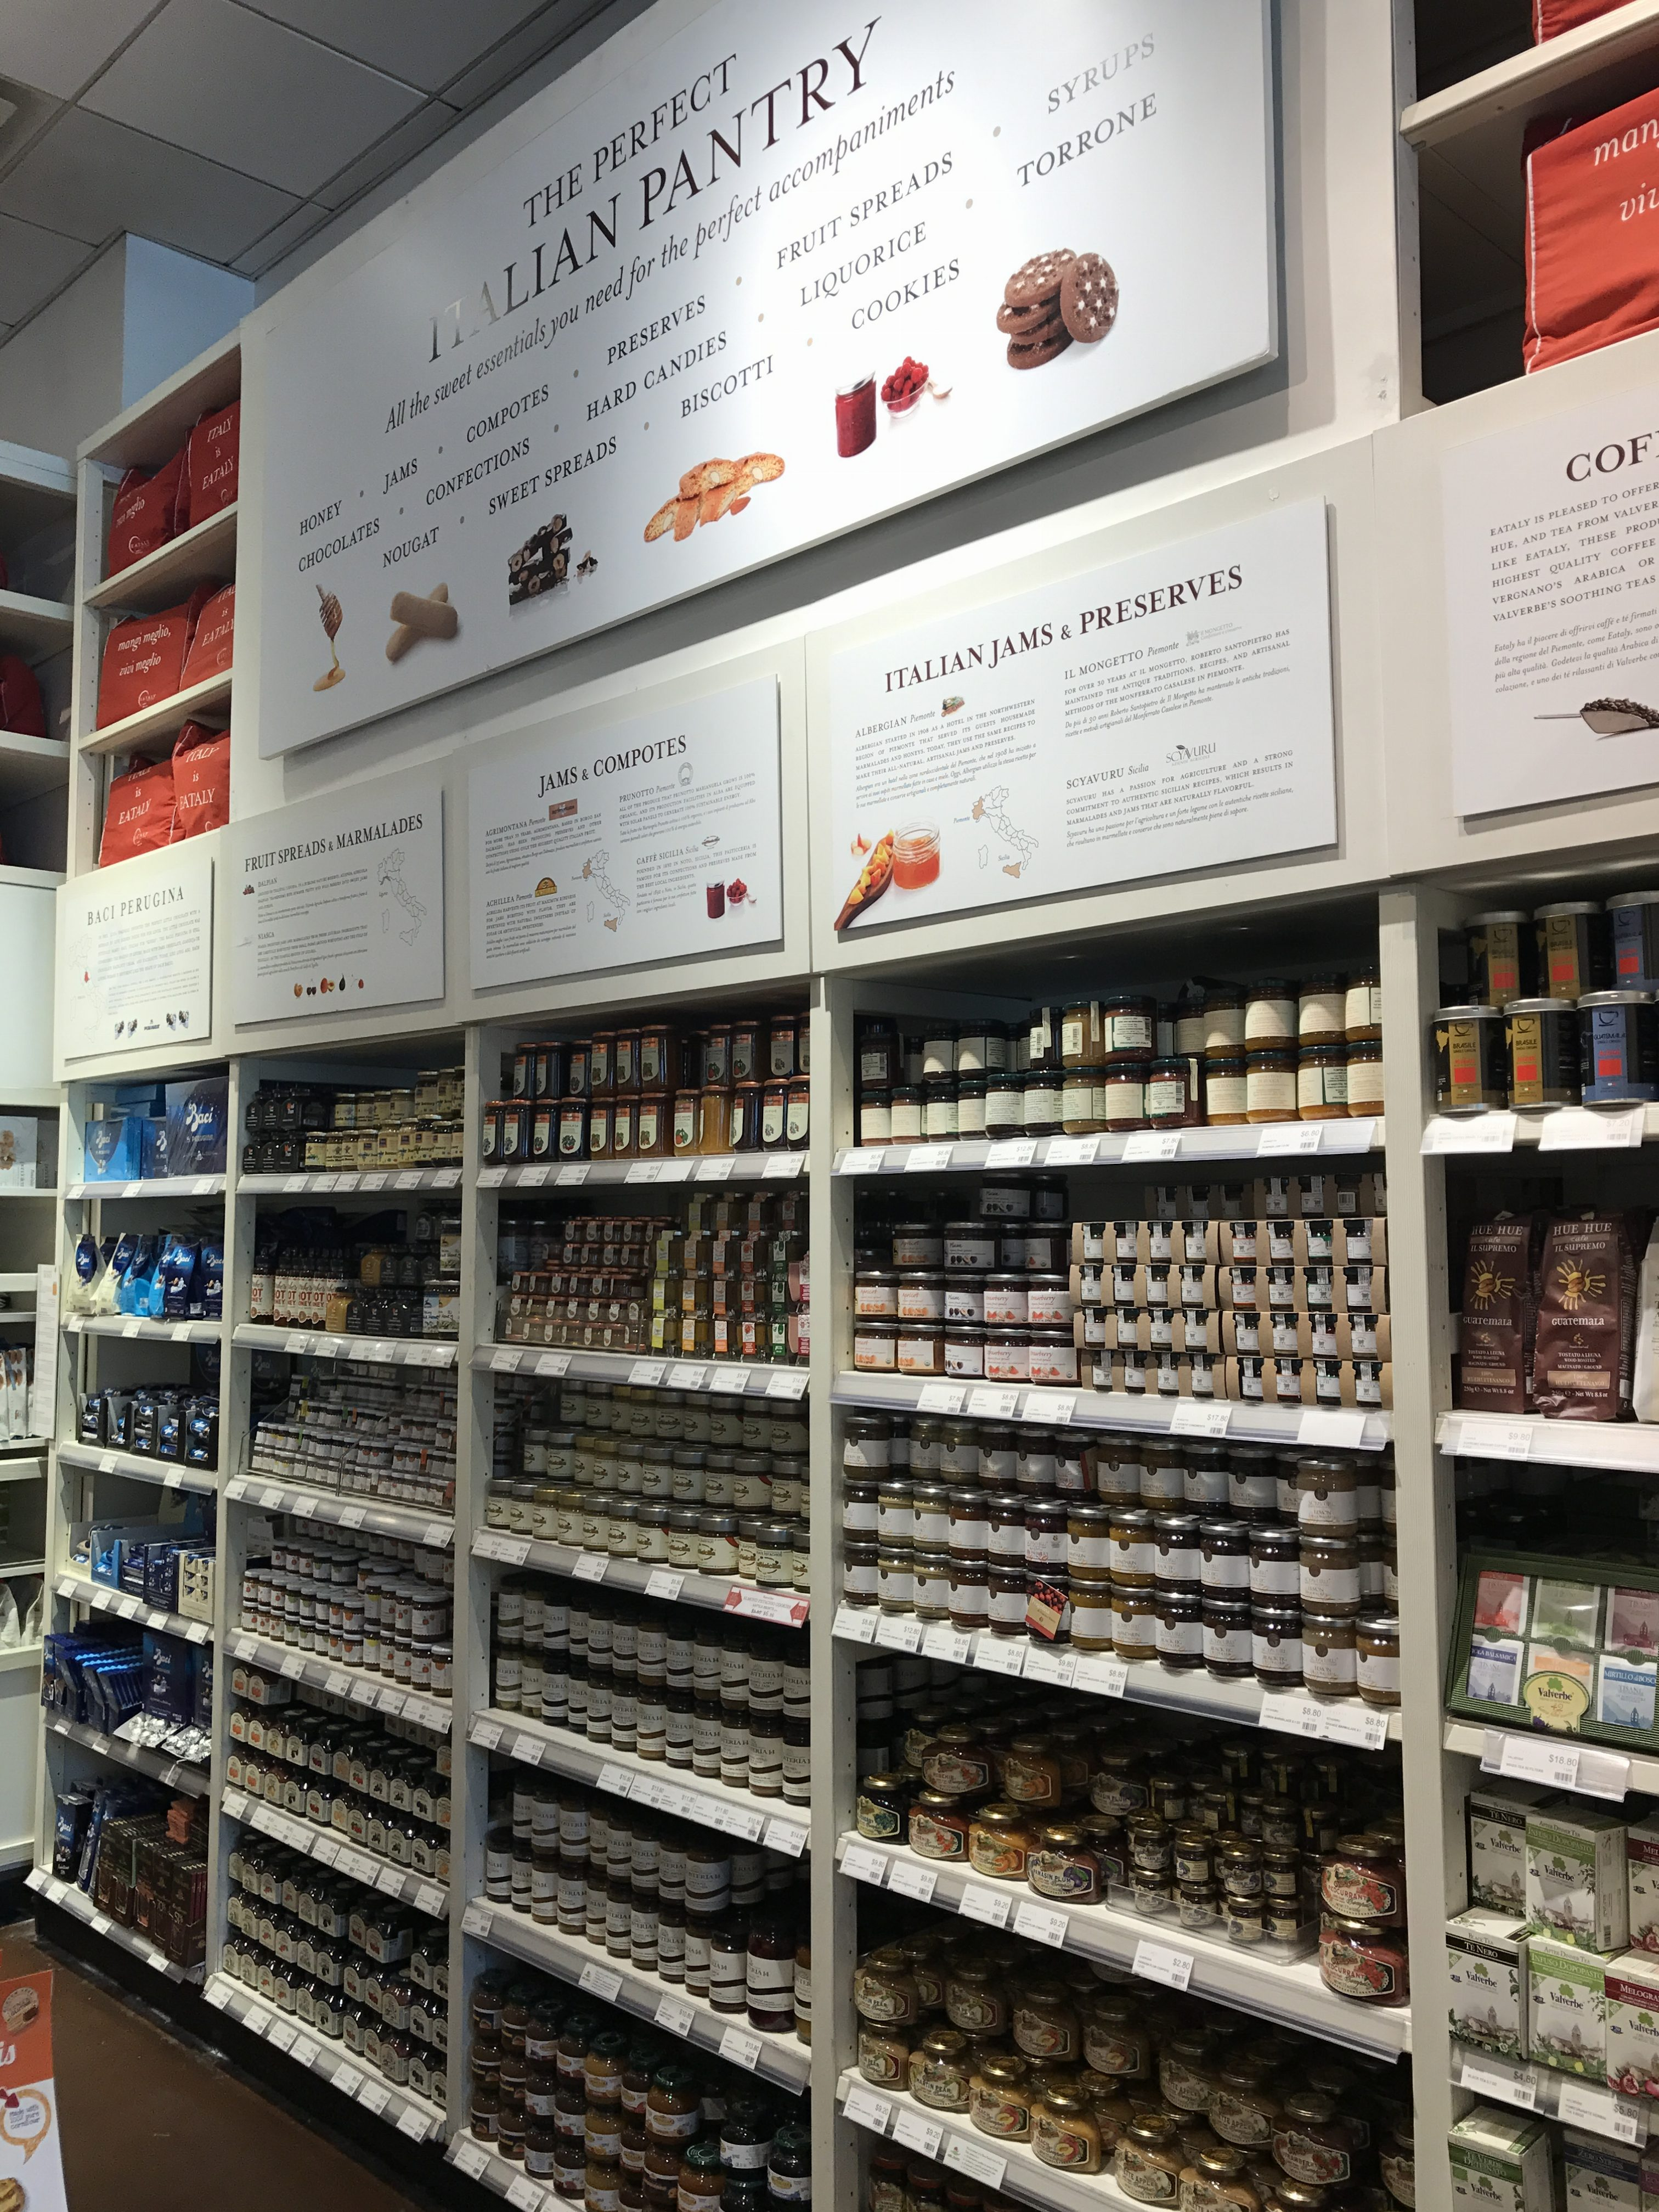 Little Eataly – The New York Experience